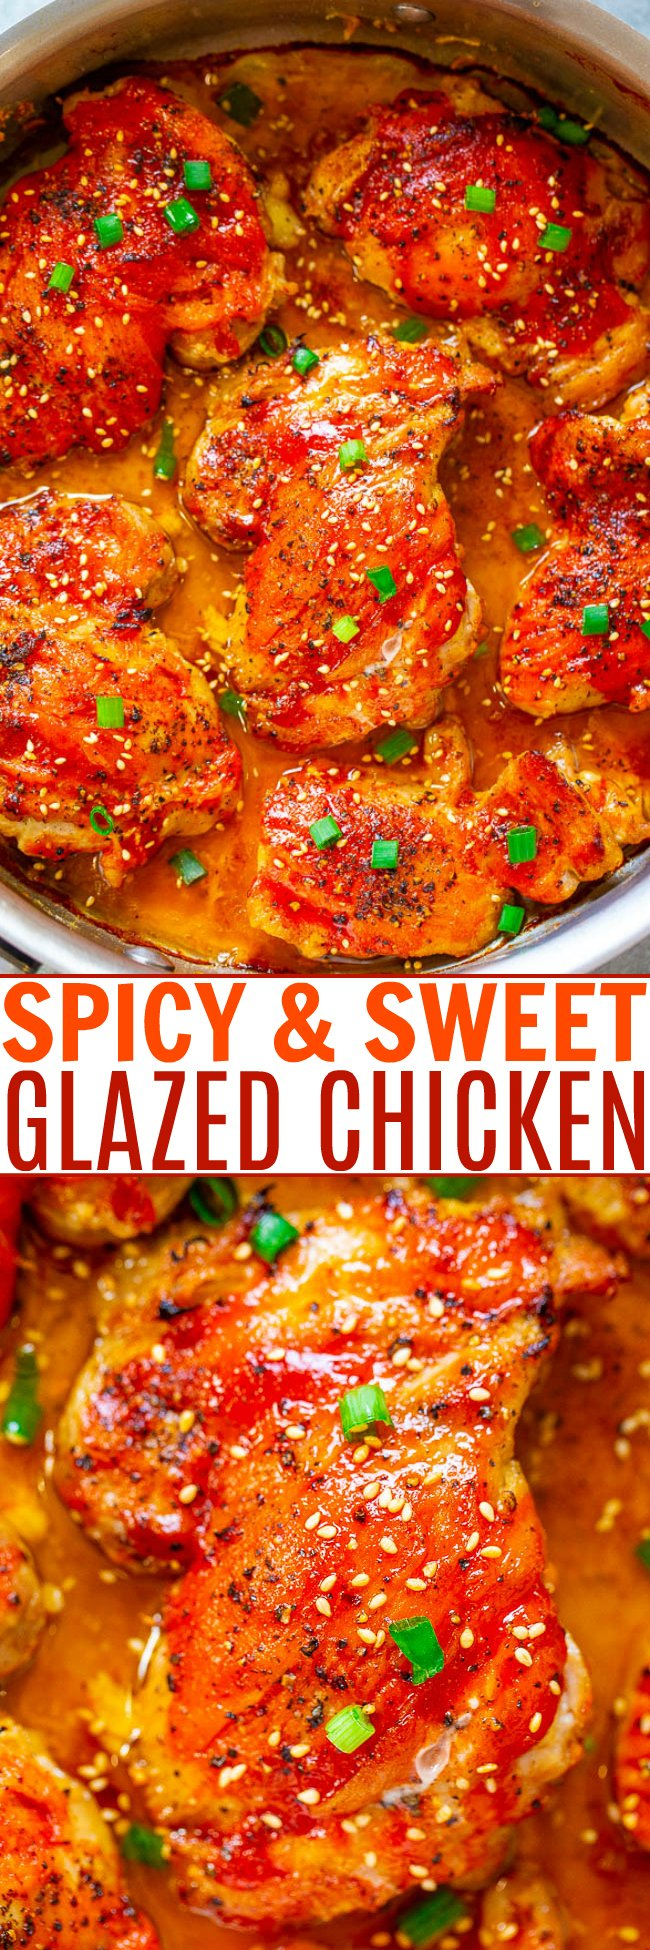 Easy Spicy-And-Sweet Glazed Chicken - Perfectly spicy with just the right amount of sweetness in this EASY, super flavorful recipe that leave you wanting more!! Crispy skin on the outside, juicy and tender inside, and so GOOD!!